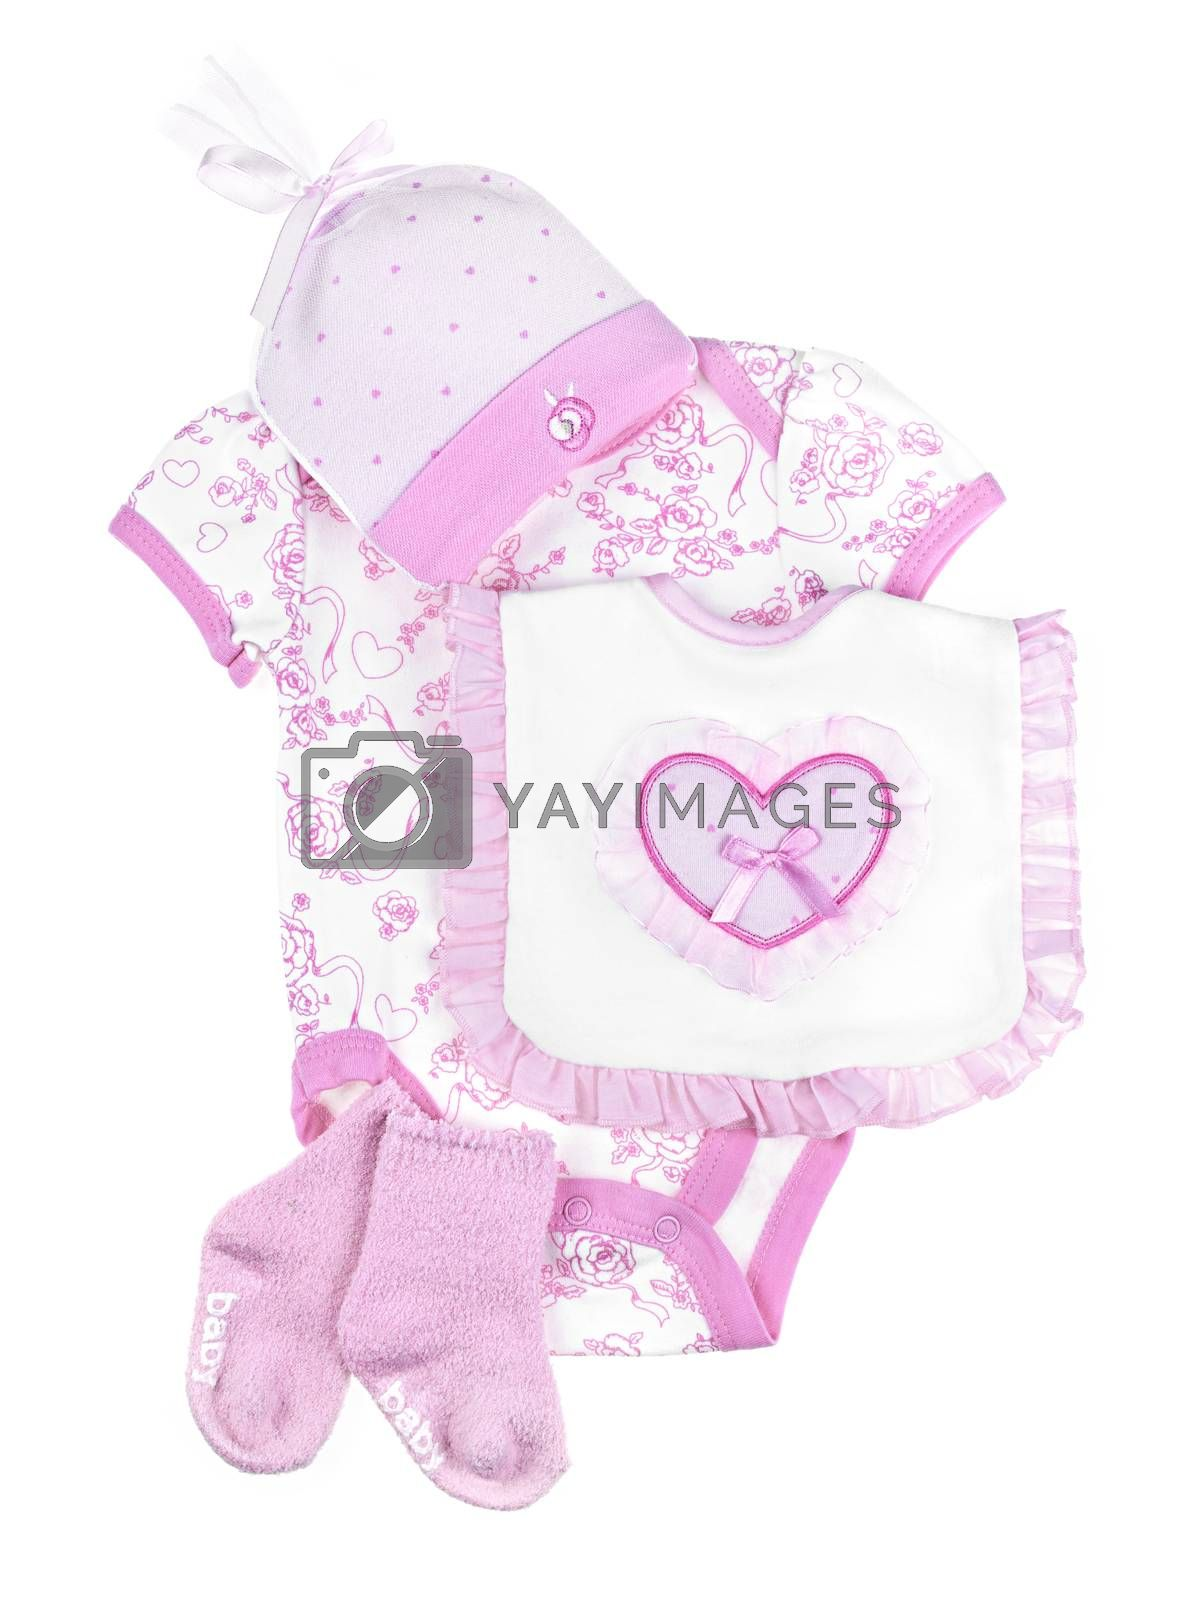 Pink infant girl clothing for baby shower isolated on white background